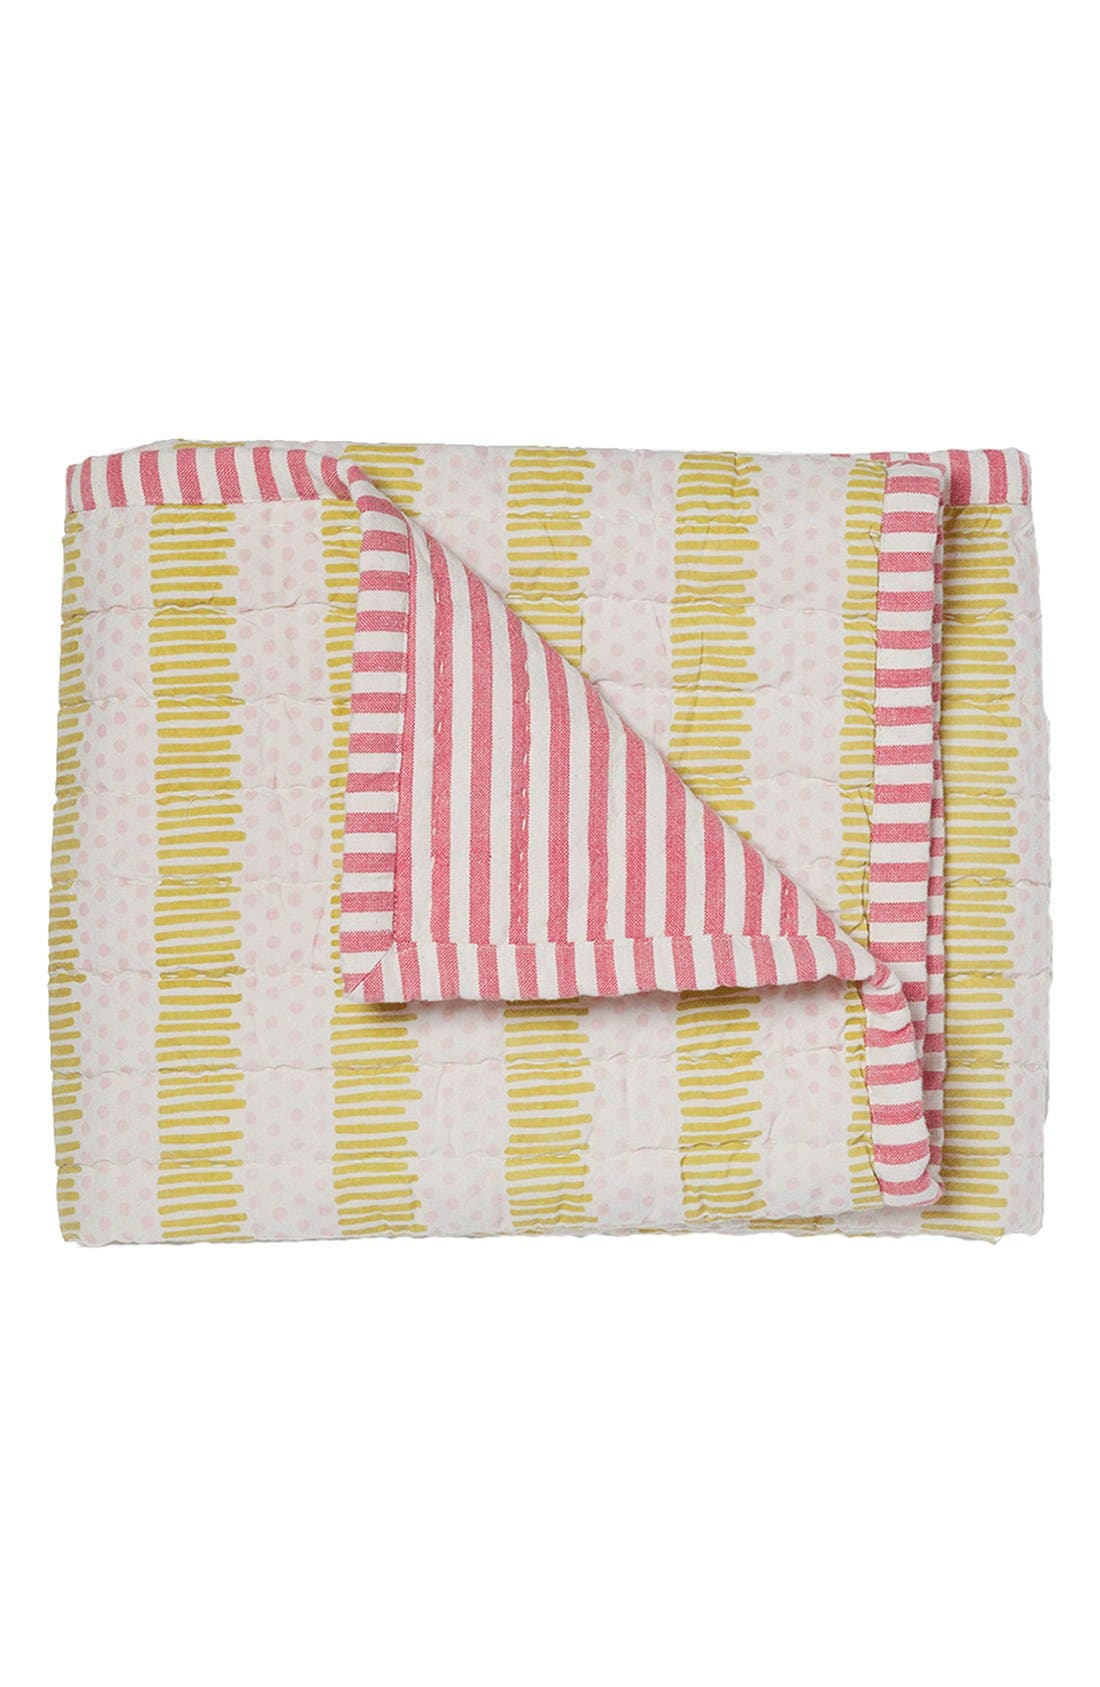 'Hug Me Tight' Cotton Baby Blanket,                         Main,                         color, Pink/ Citron